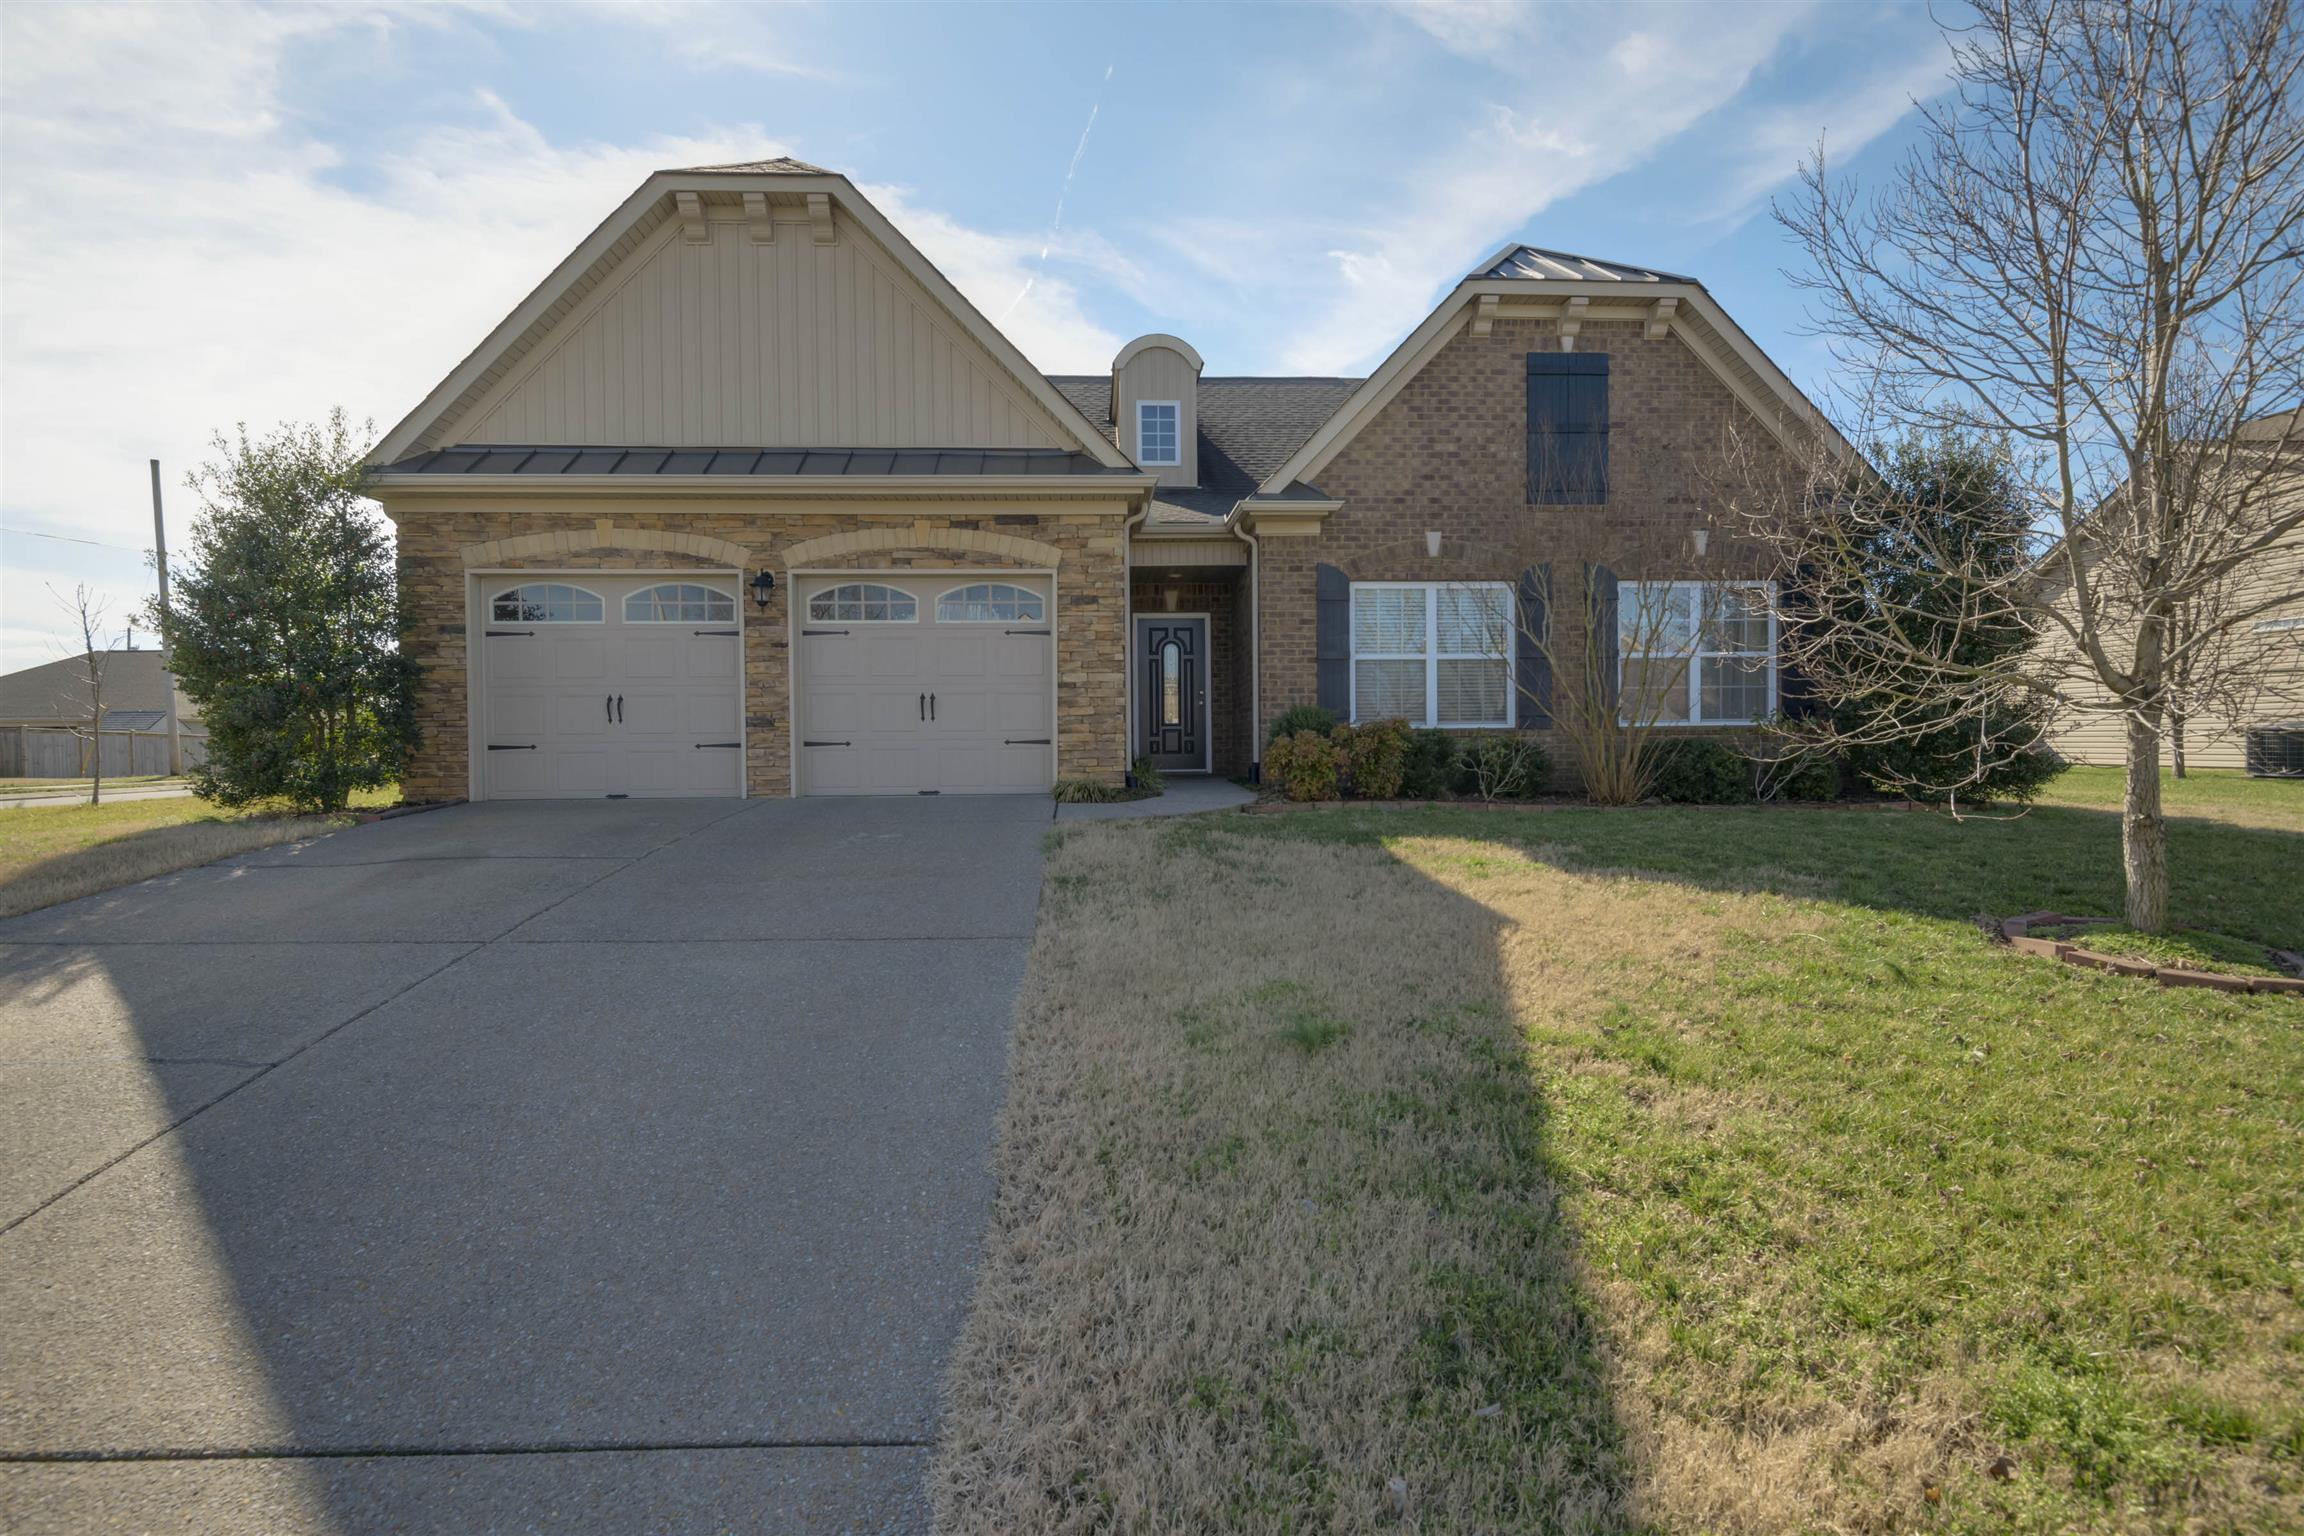 517 Callie Ave 37066 - One of Gallatin Homes for Sale